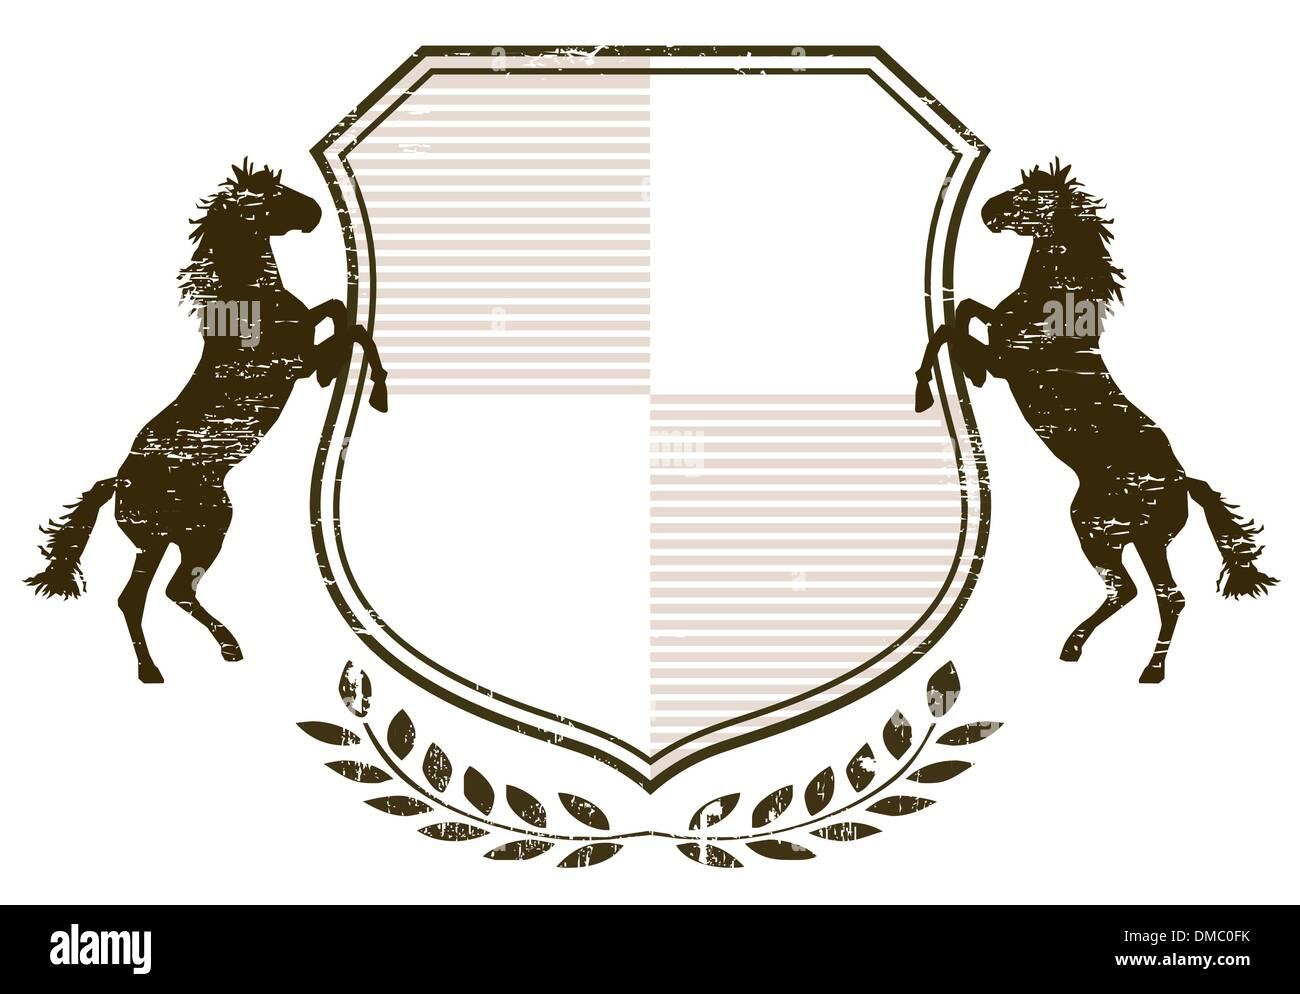 Coat of Arms with horses - Stock Image